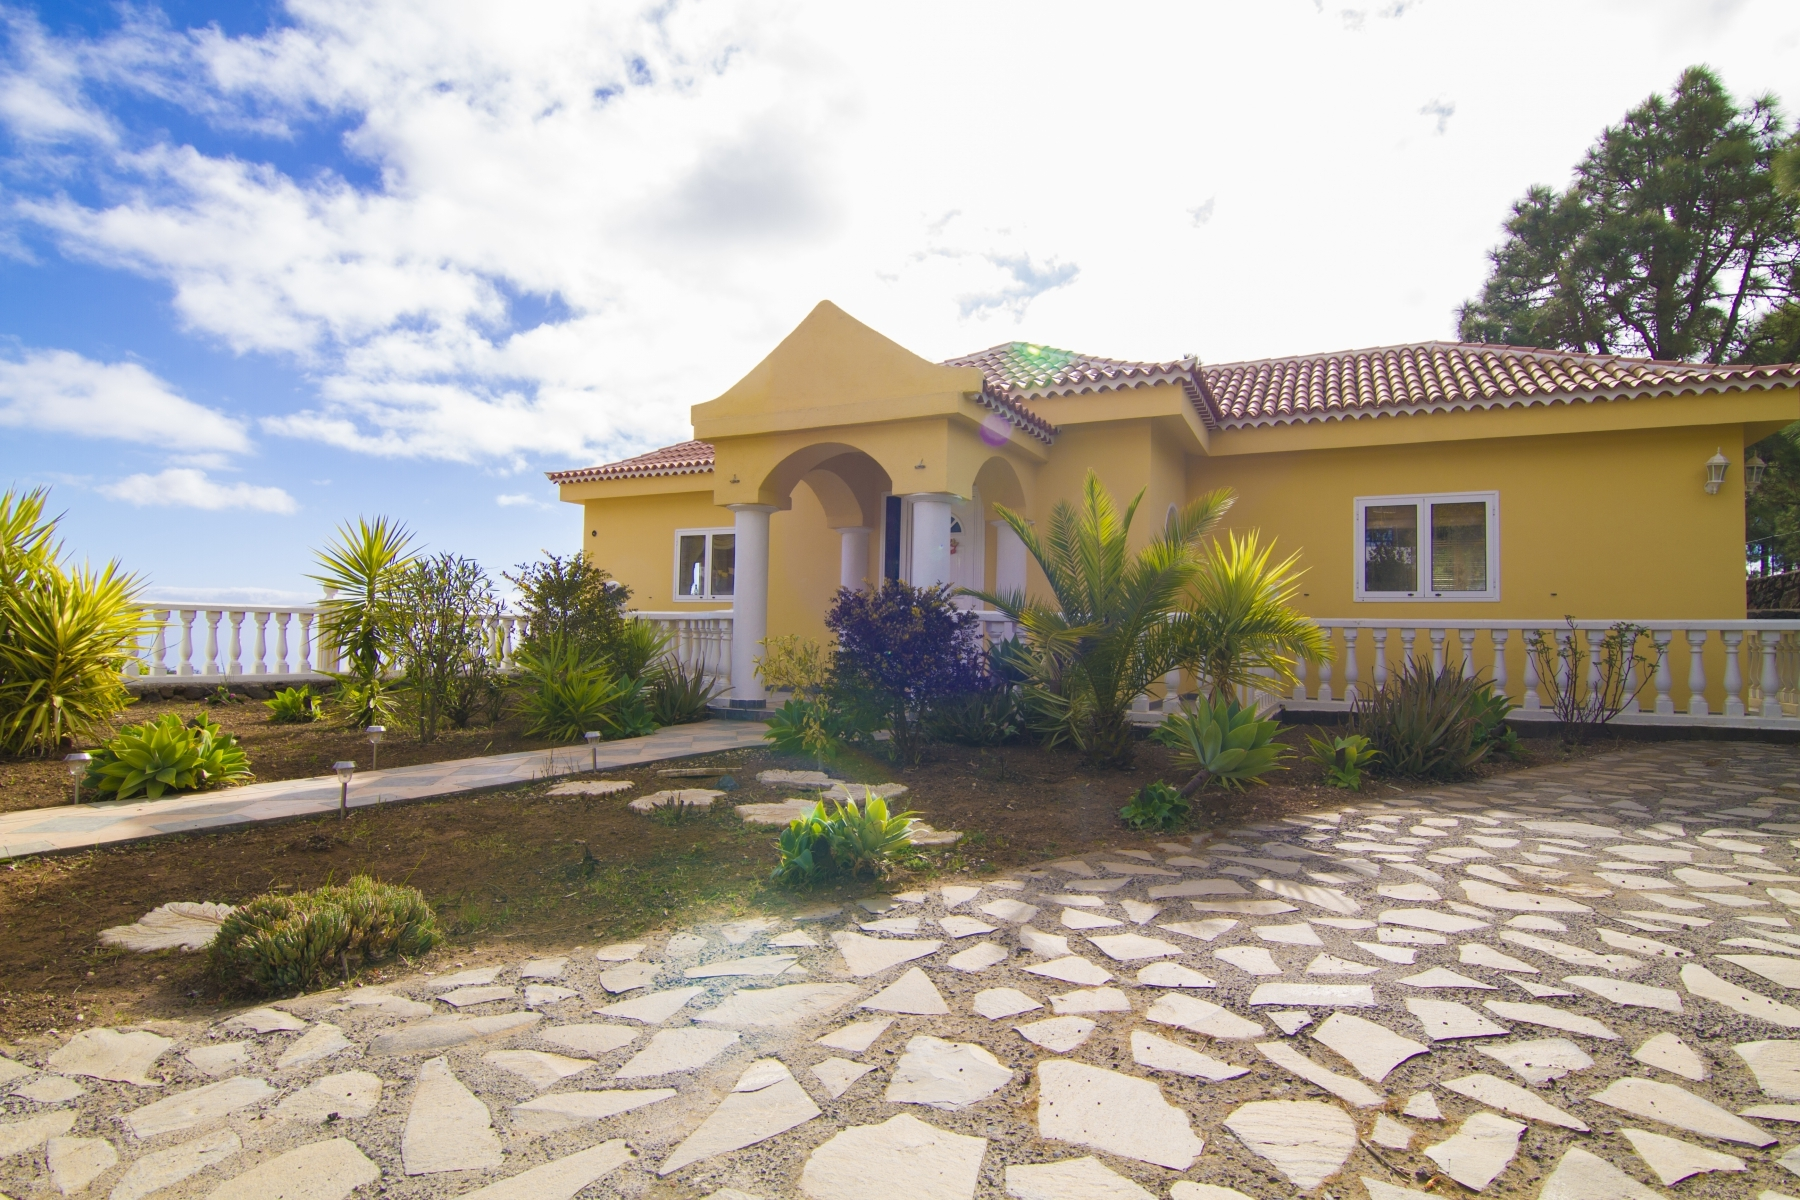 Properties for Sale in Tenerife, Canary Islands, Spain | SylkWayStar Real Estate. Finca with vineyard - Cruz de Tea - Granadilla de Abona . Image-21843